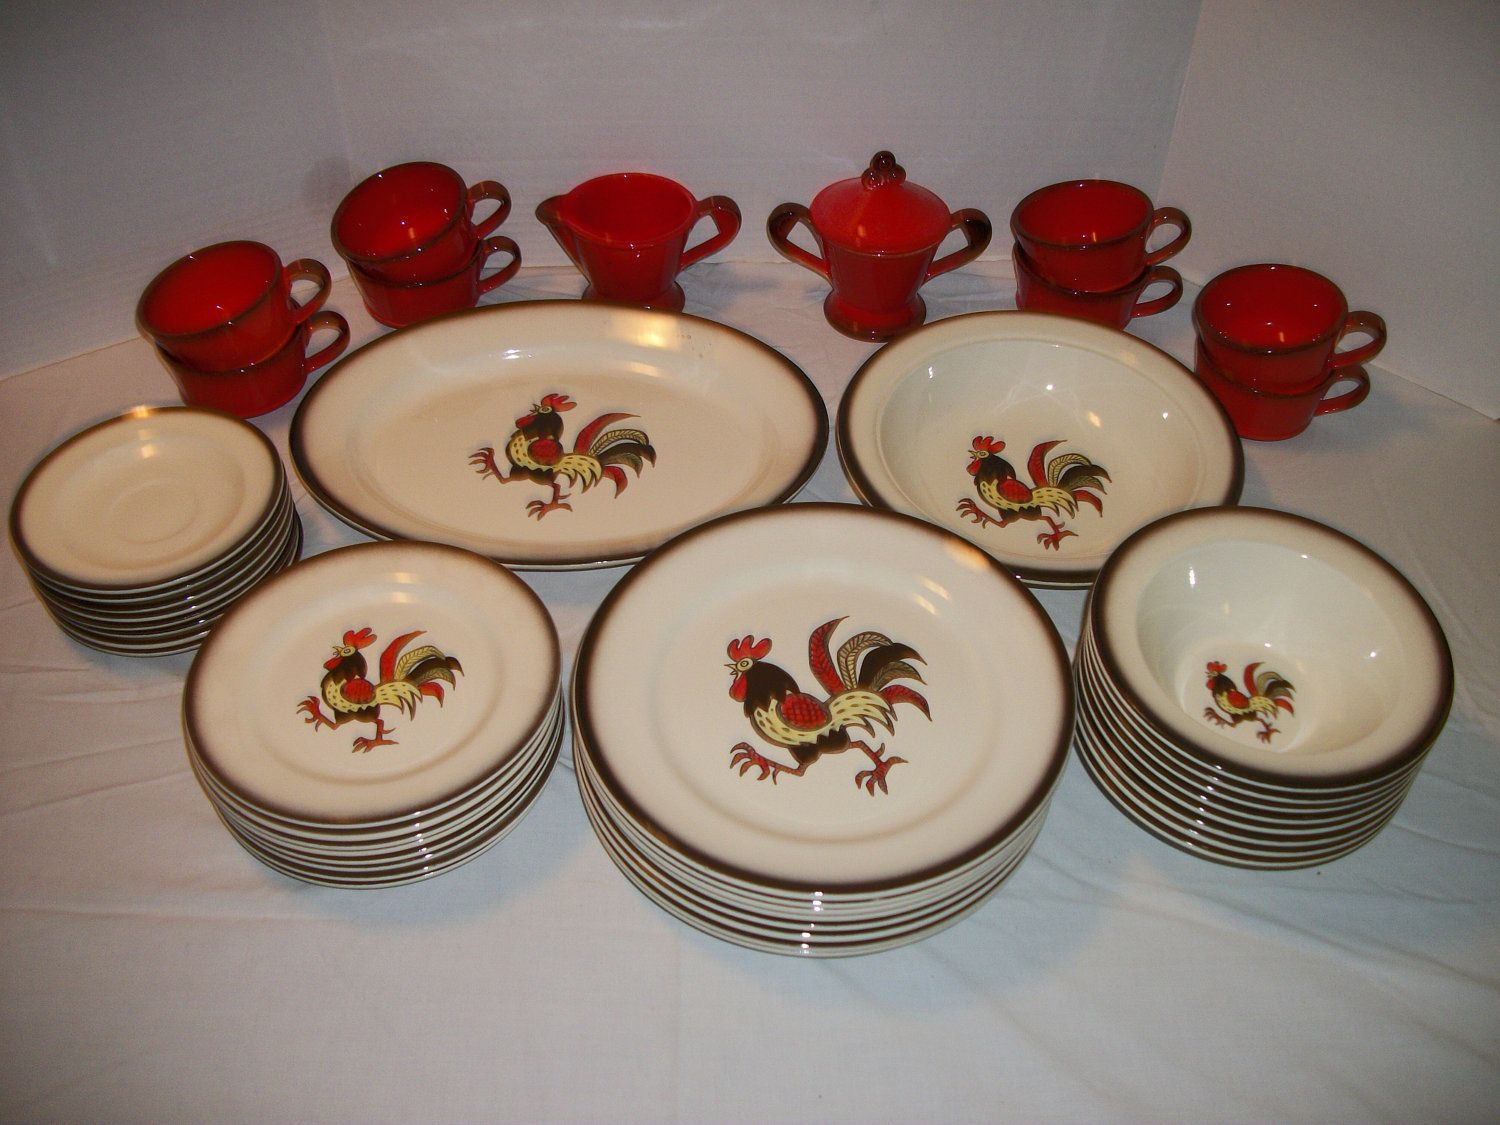 44 Pieces of METLOX POPPYTRAIL Red Rooster Dinnerware Service For